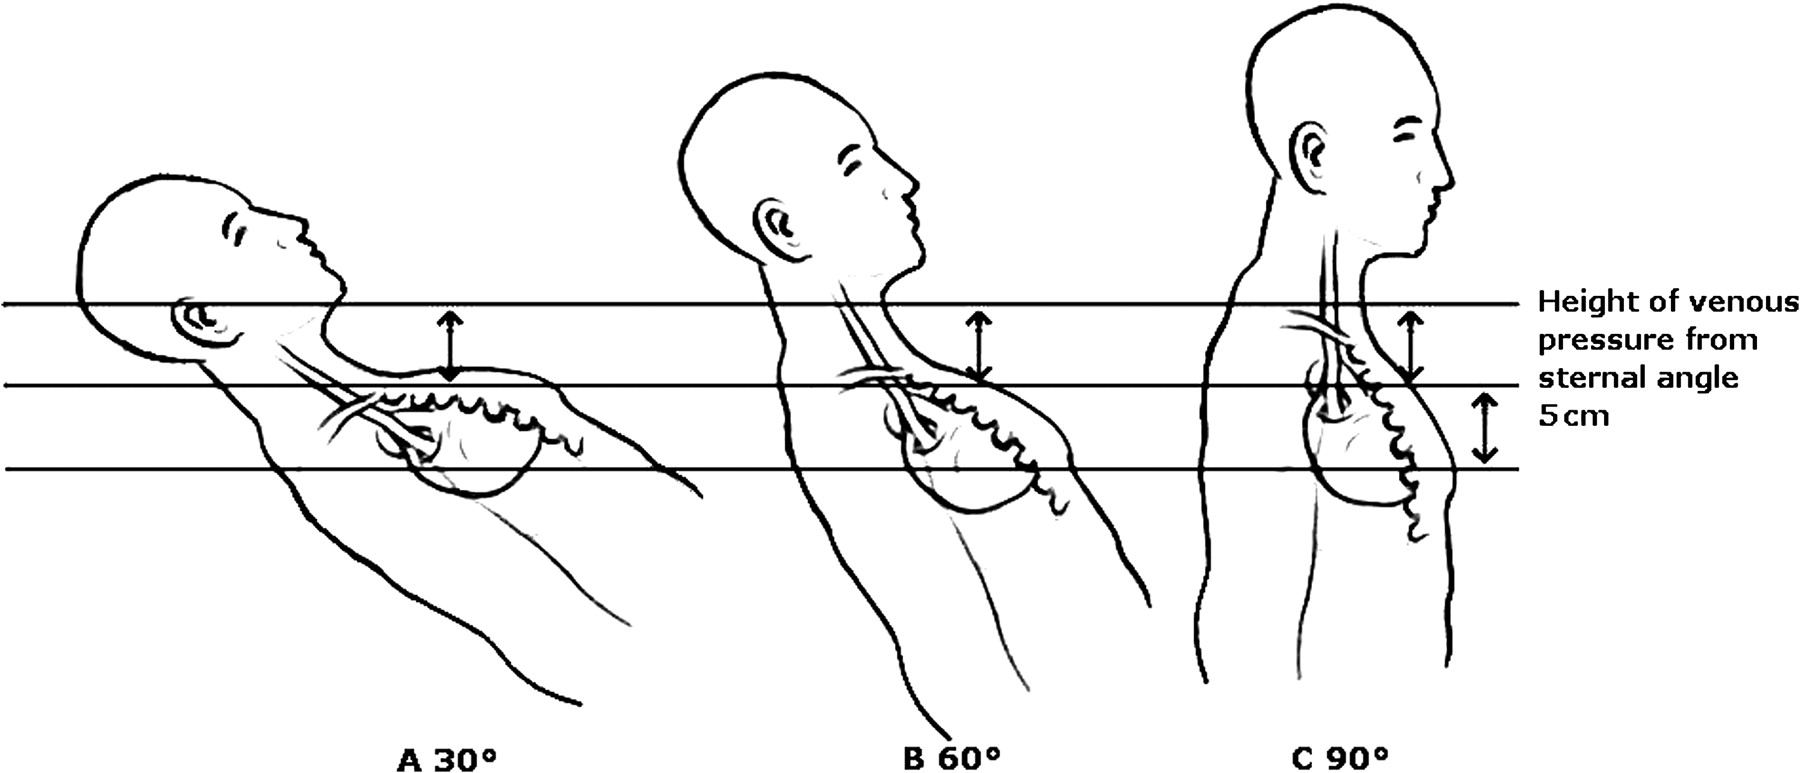 Sonographic assessment of jugular venous distension and B